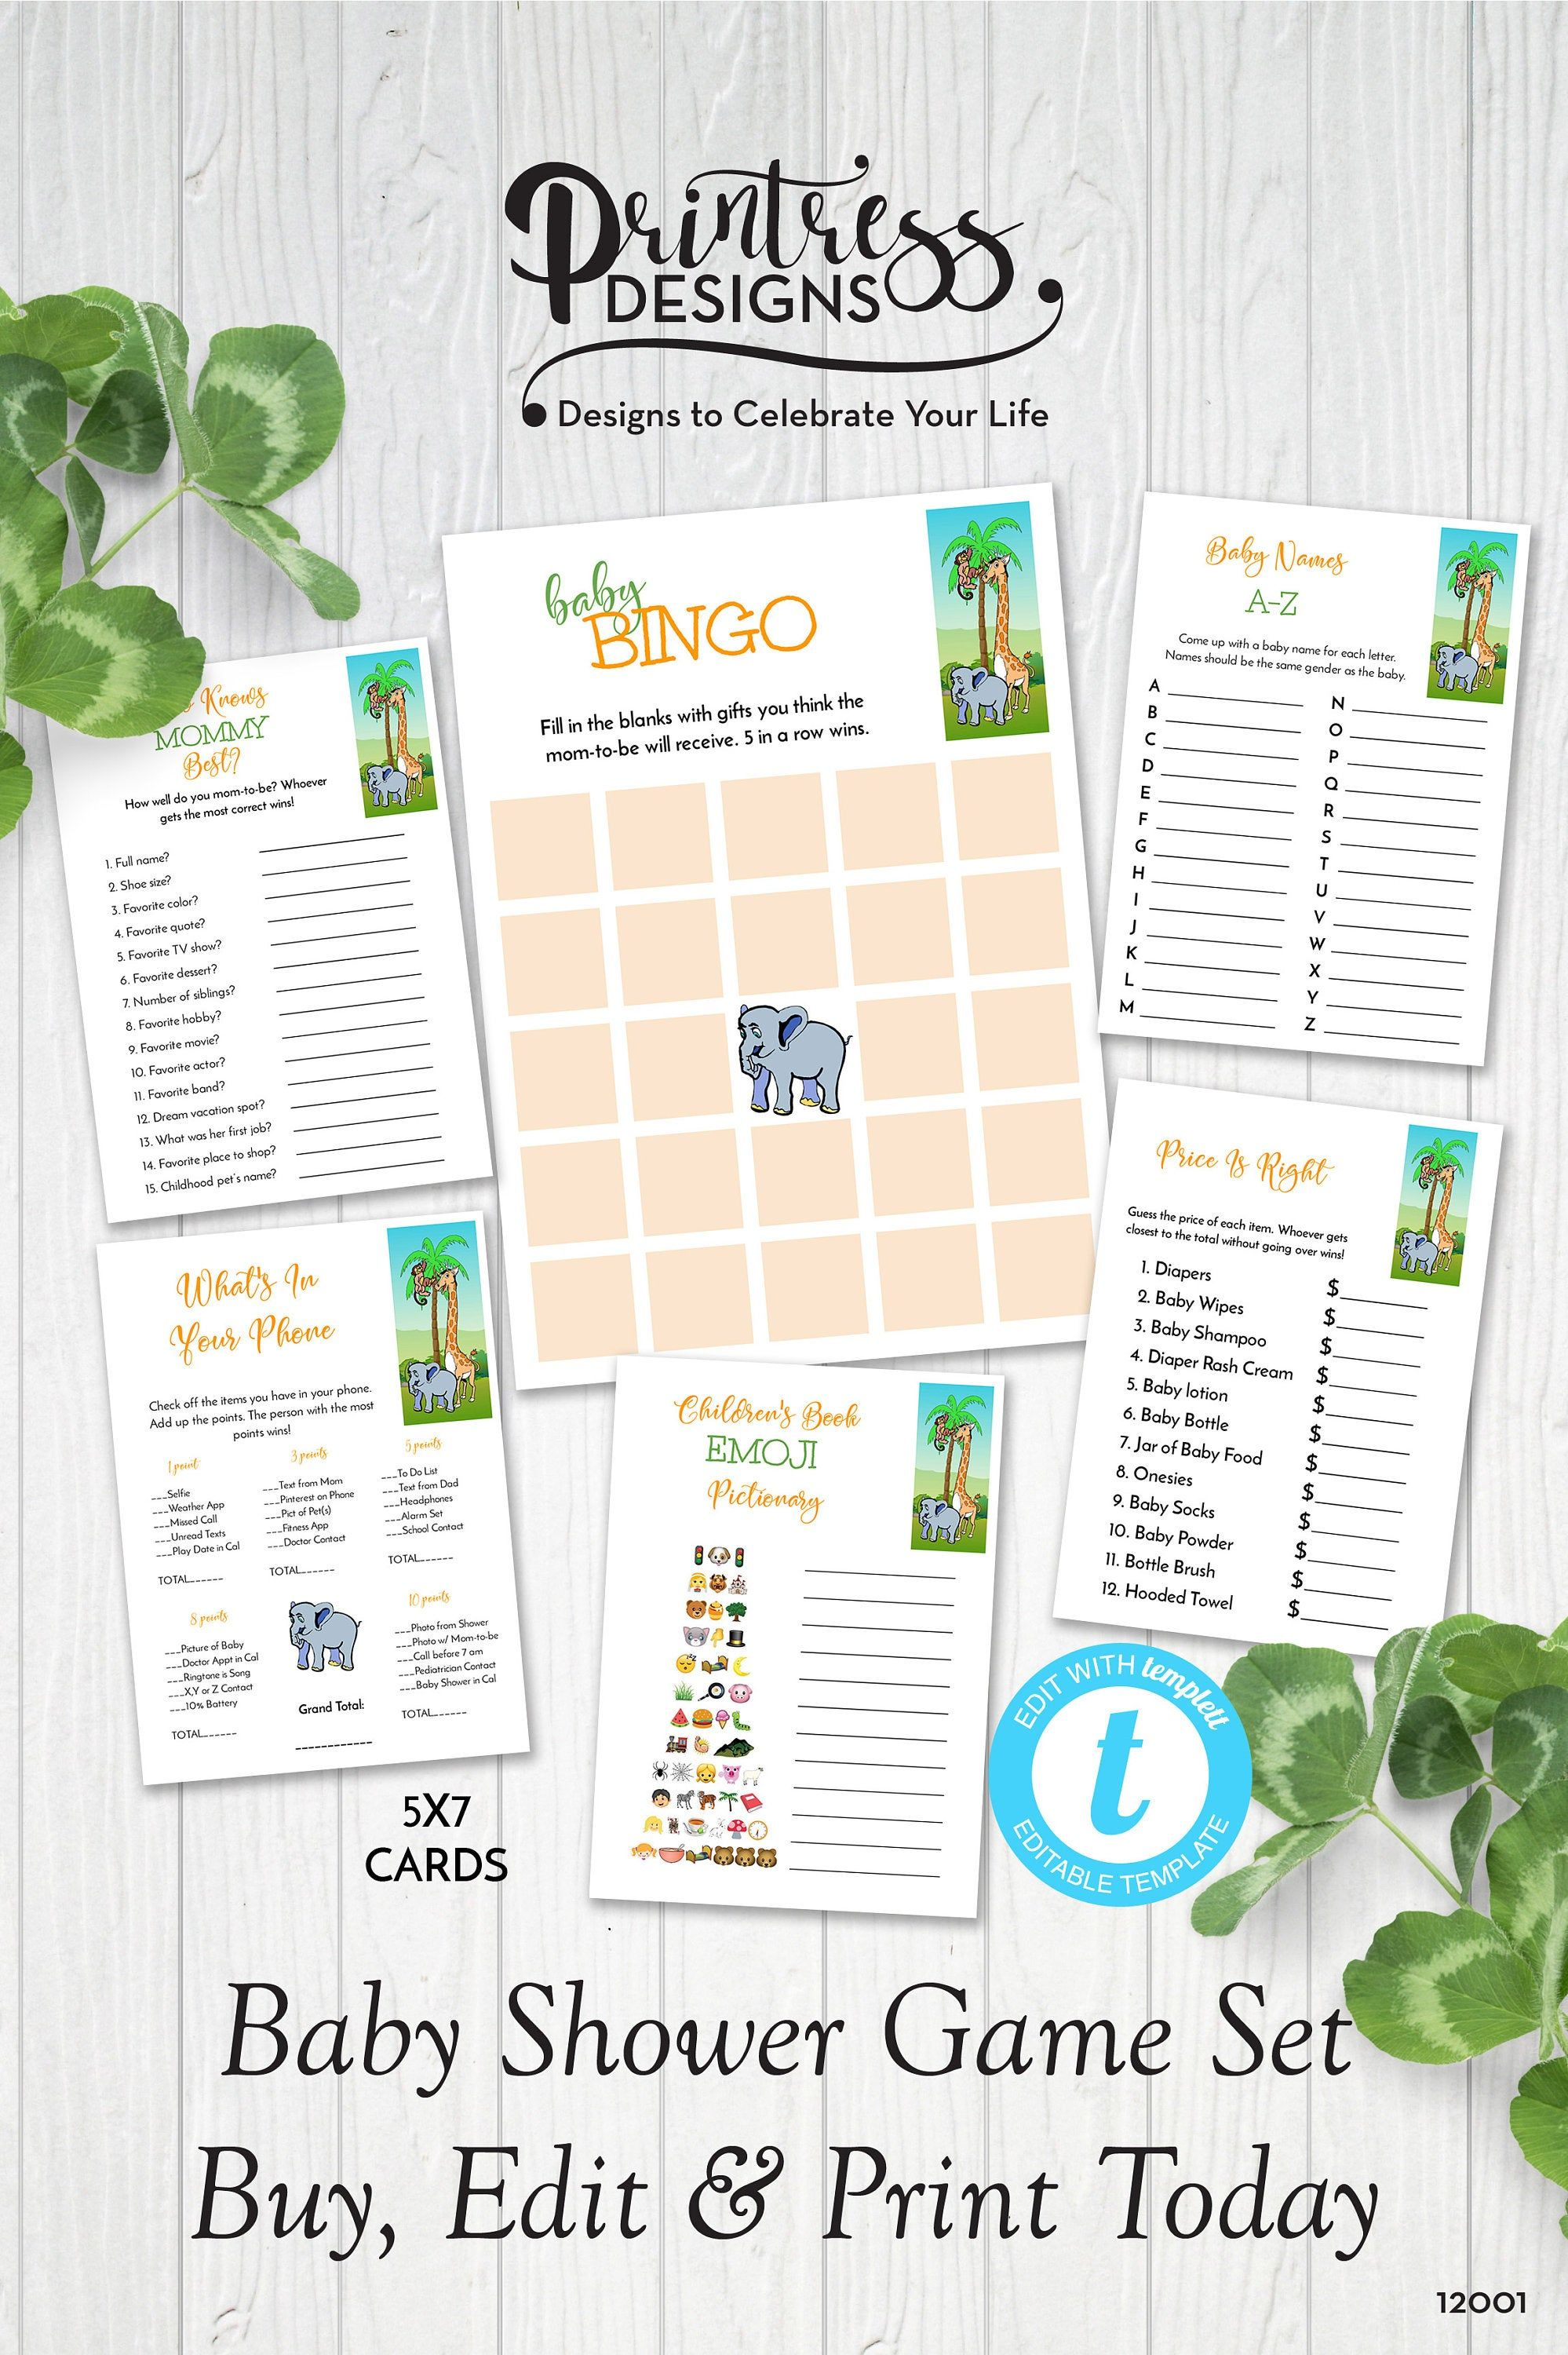 Safari Animals Baby Shower Games Set Of 6 Templates Instant Download Or Edit In Templett Zbsgm6 12001 In 2020 Safari Animals Baby Shower Animal Baby Shower Games Baby Shower Games